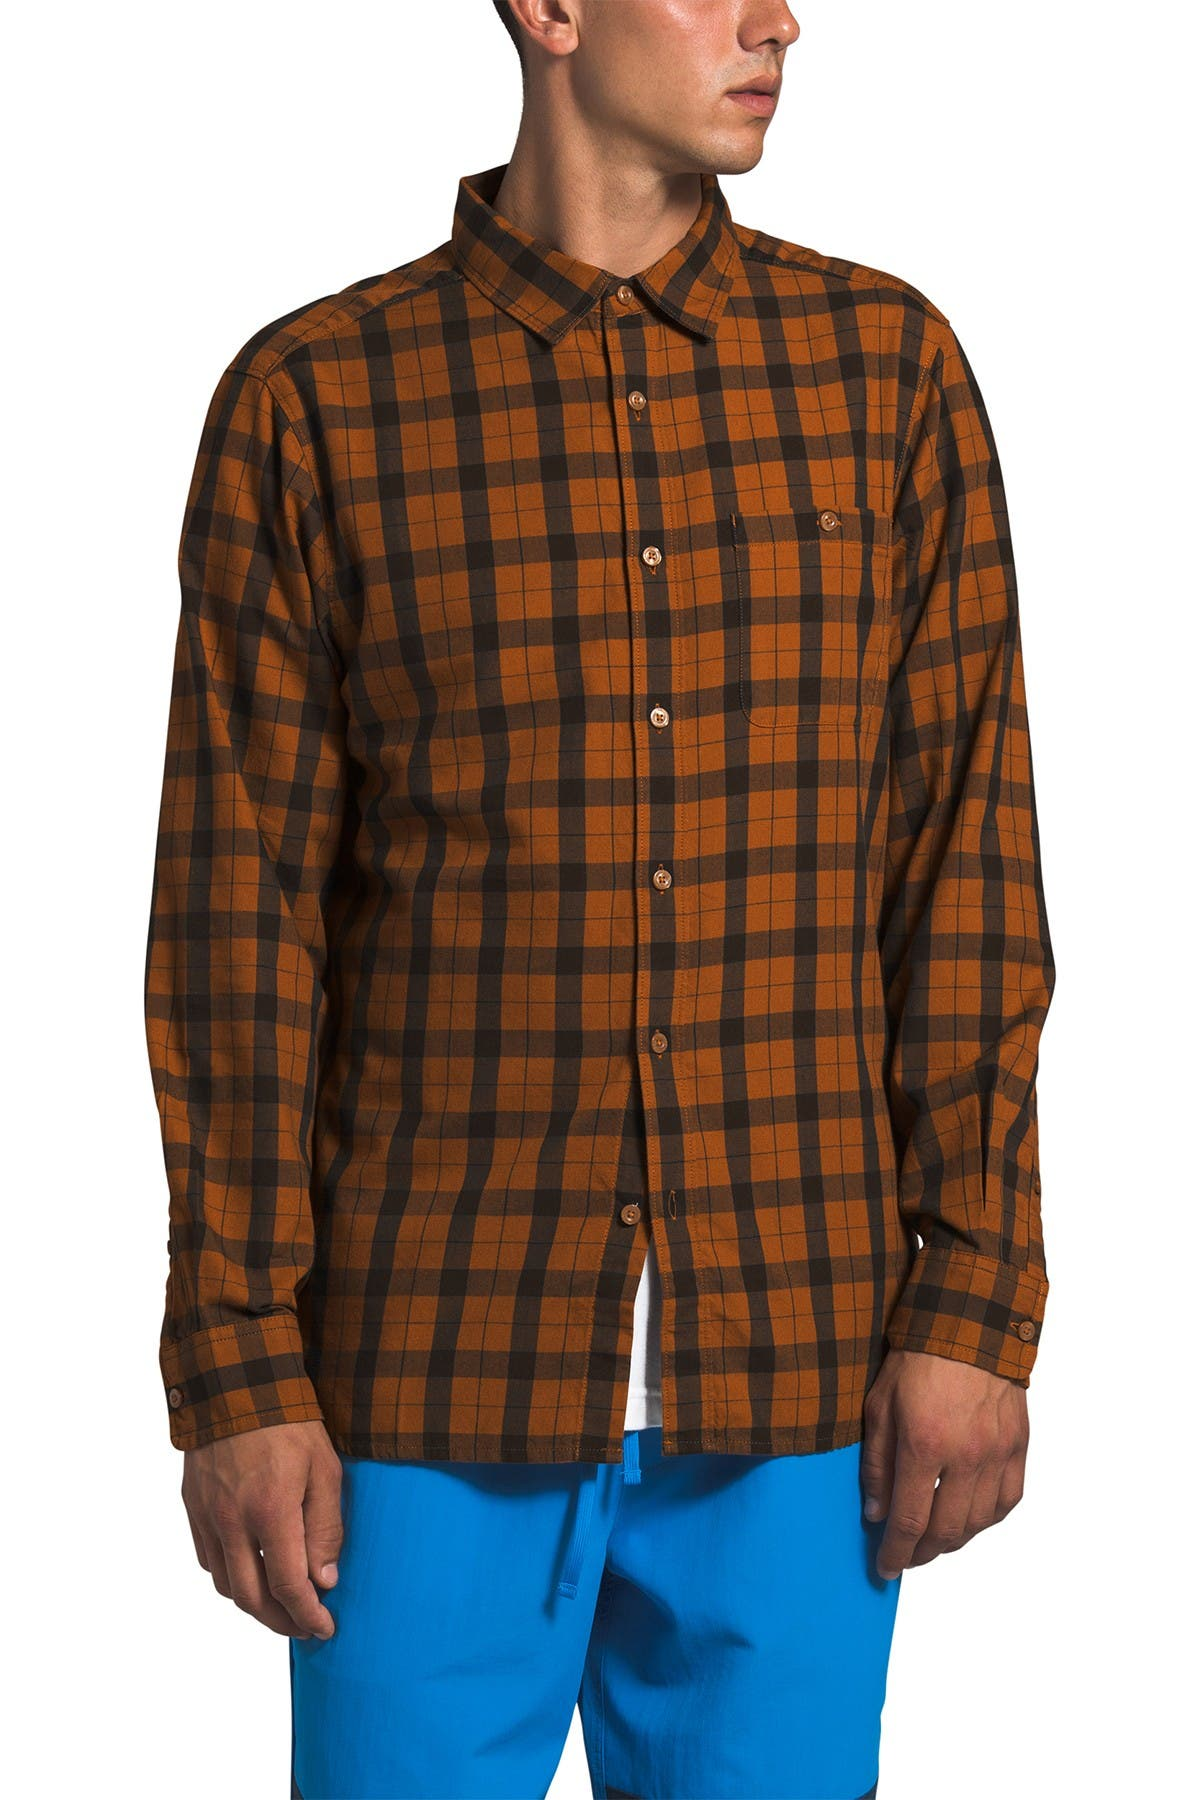 Image of The North Face Hayden 2.0 Check Long Sleeve Regular Shirt